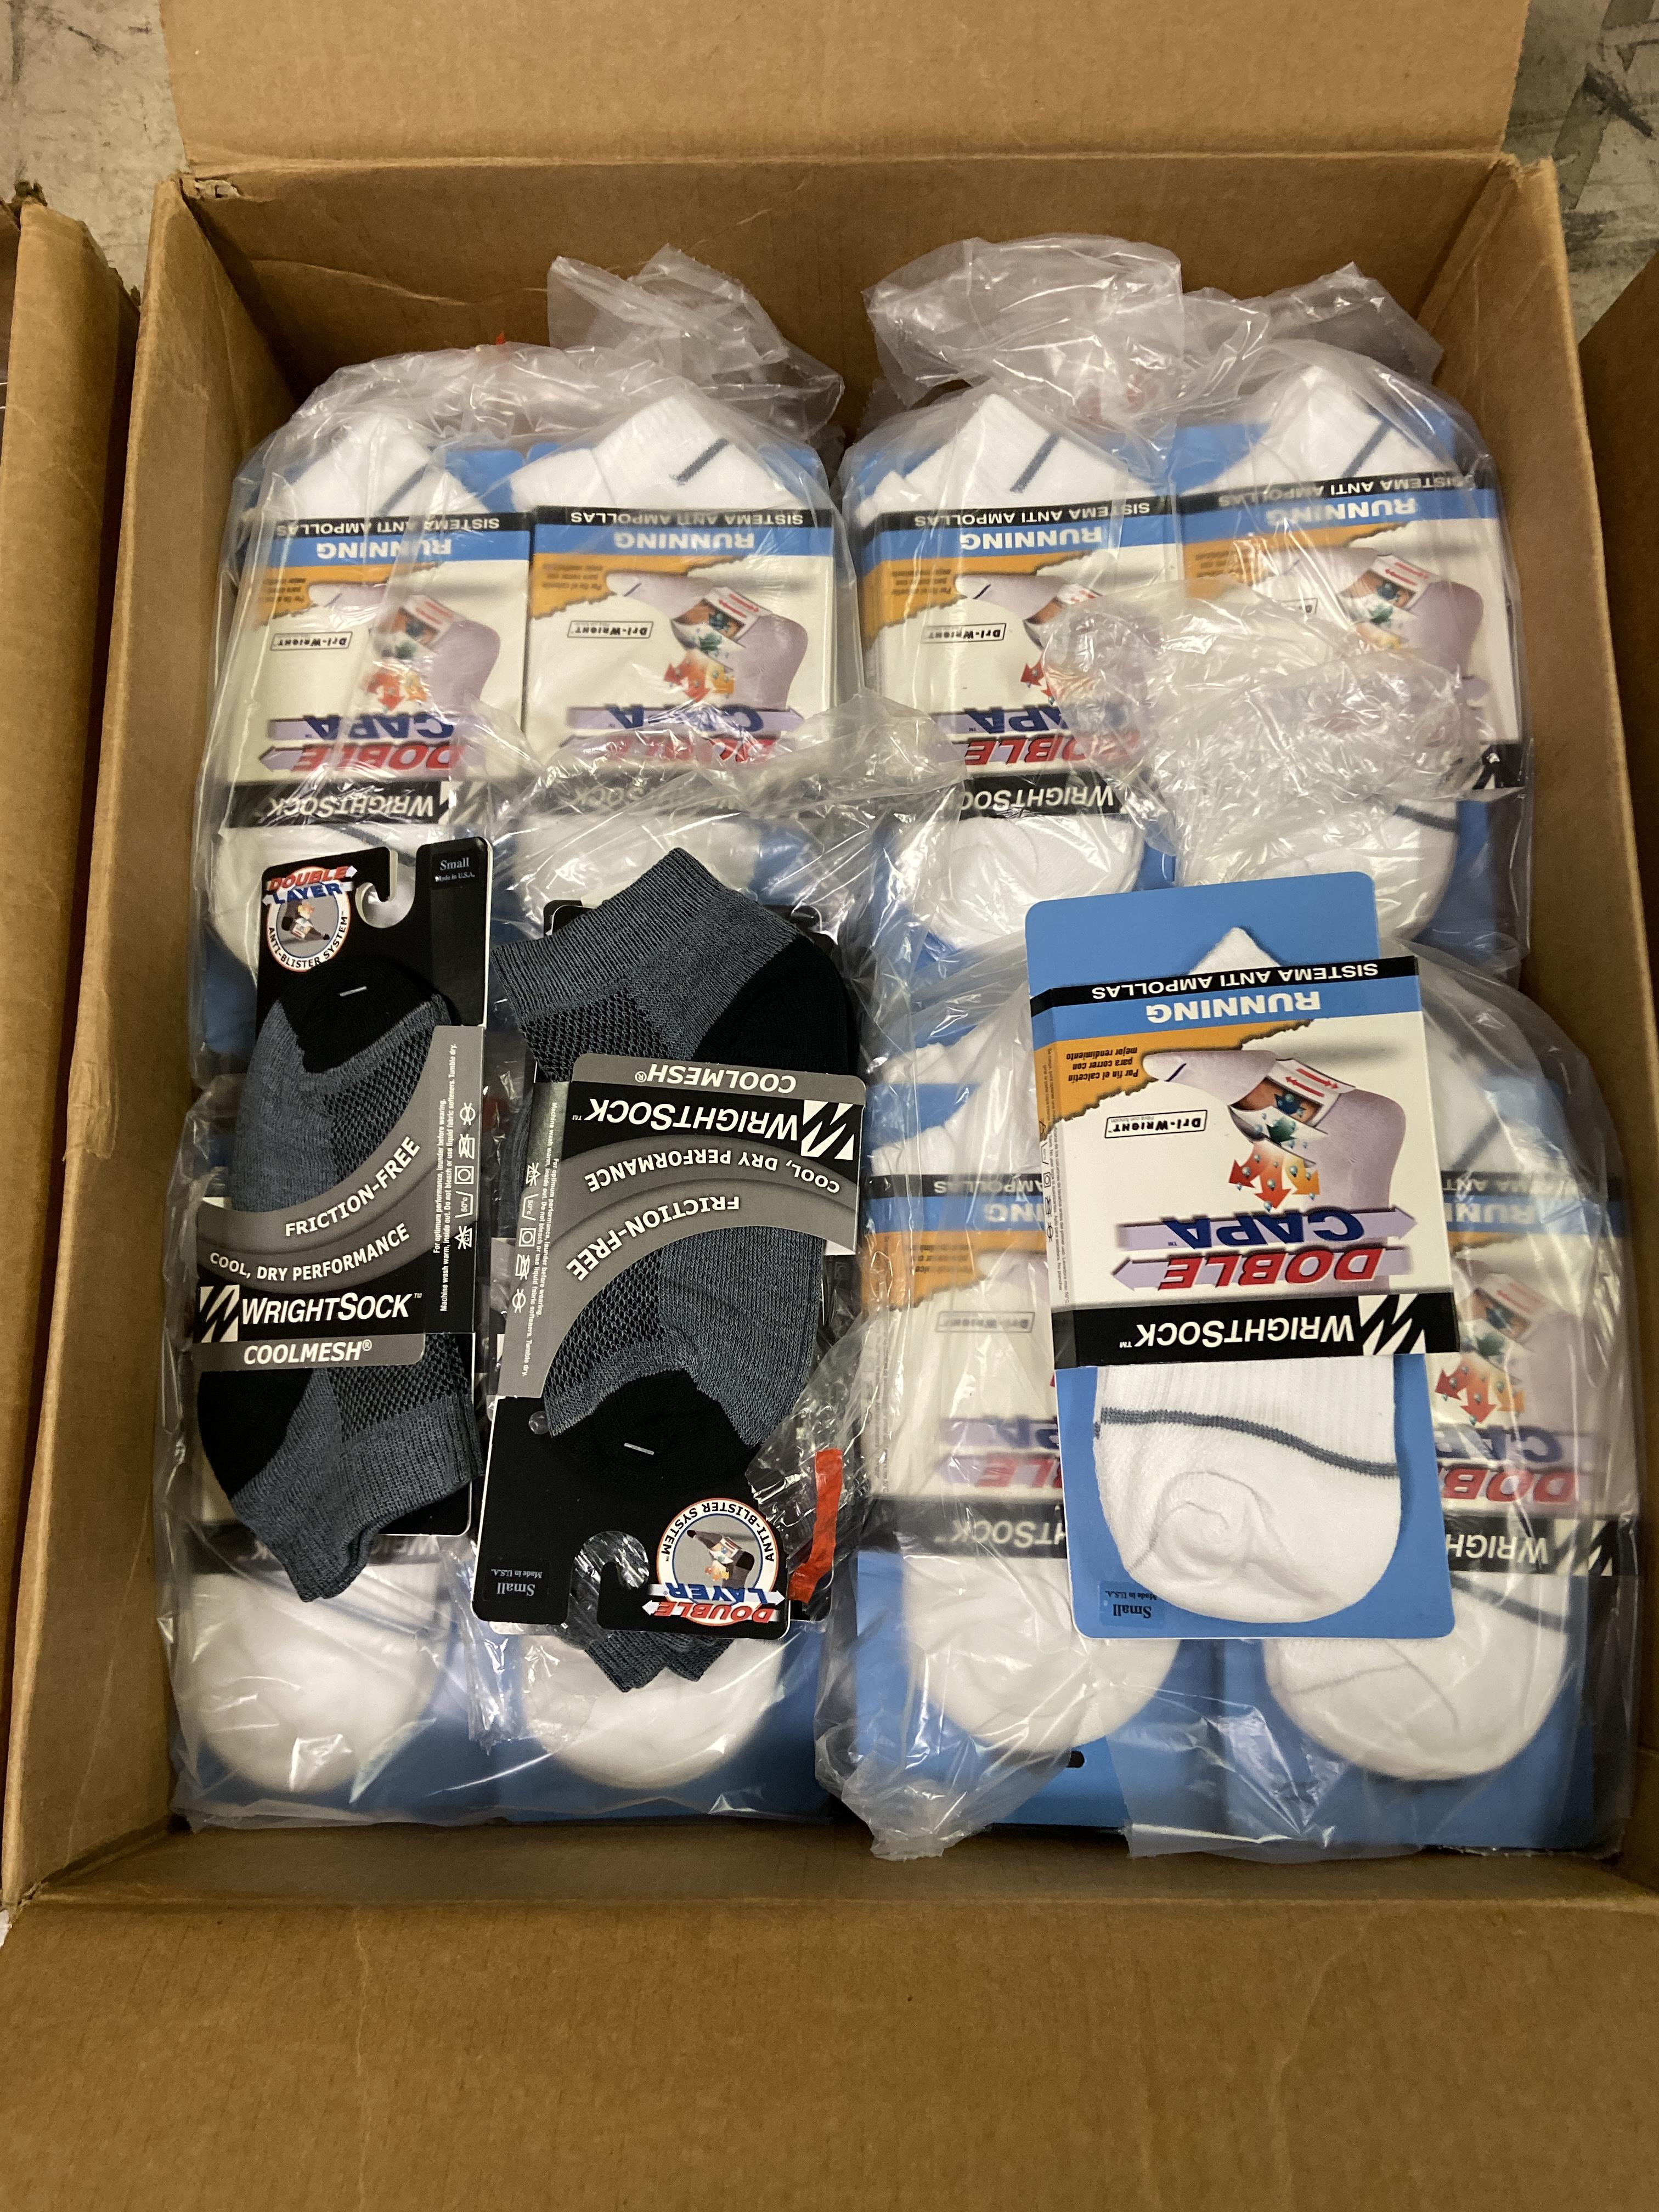 500+ packs of New Socks, Wrightsock Various Styles, Double Layer, Various Colors White/Black/Etc - Image 2 of 7